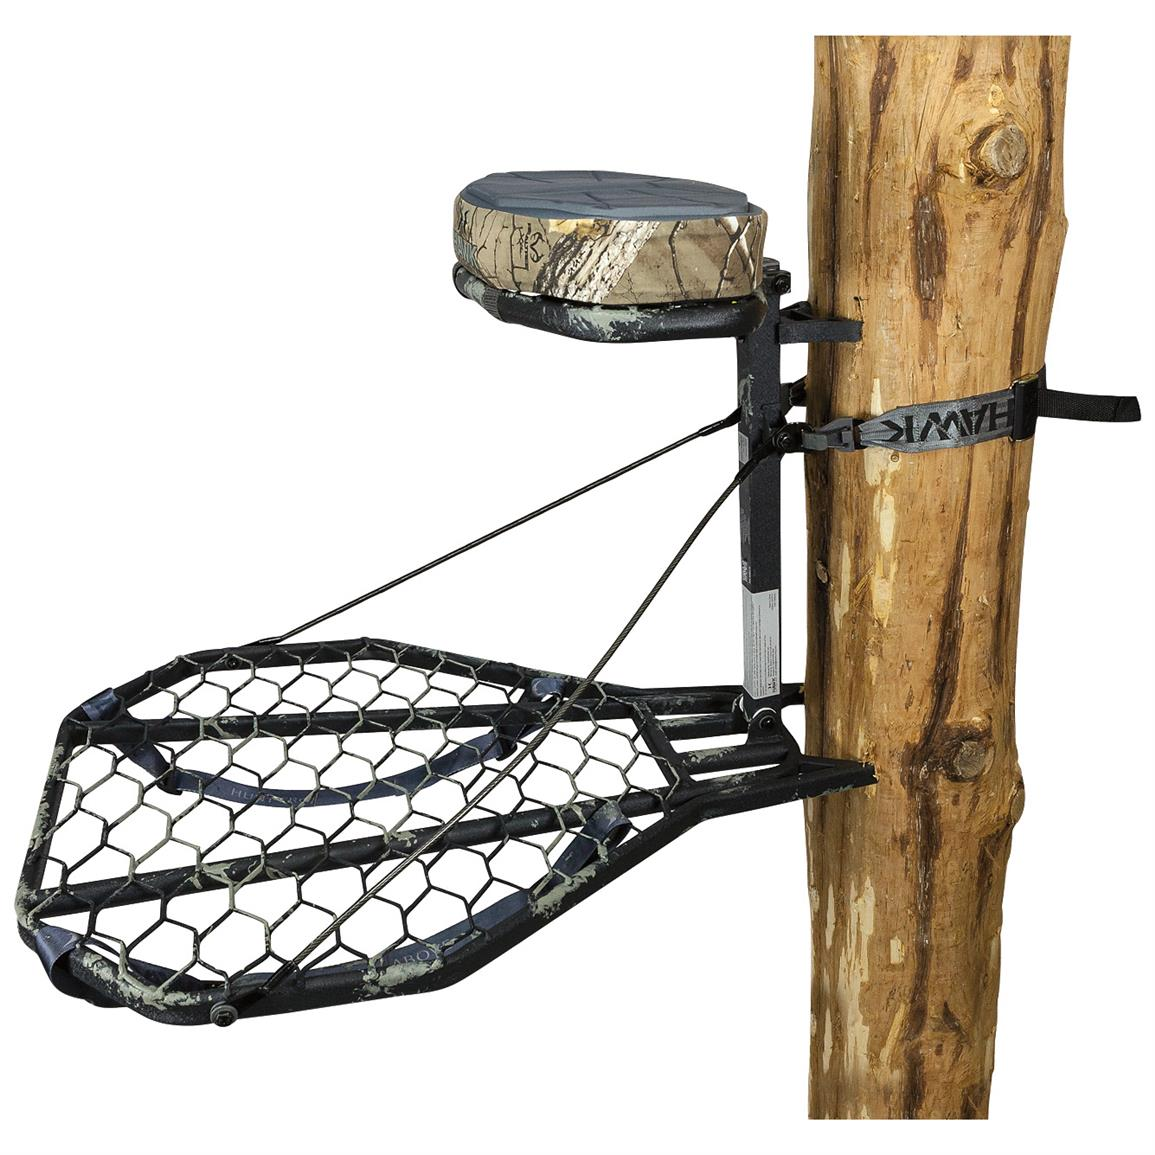 Hawk Mega Combat Hang-on Tree Stand with Mud Finish